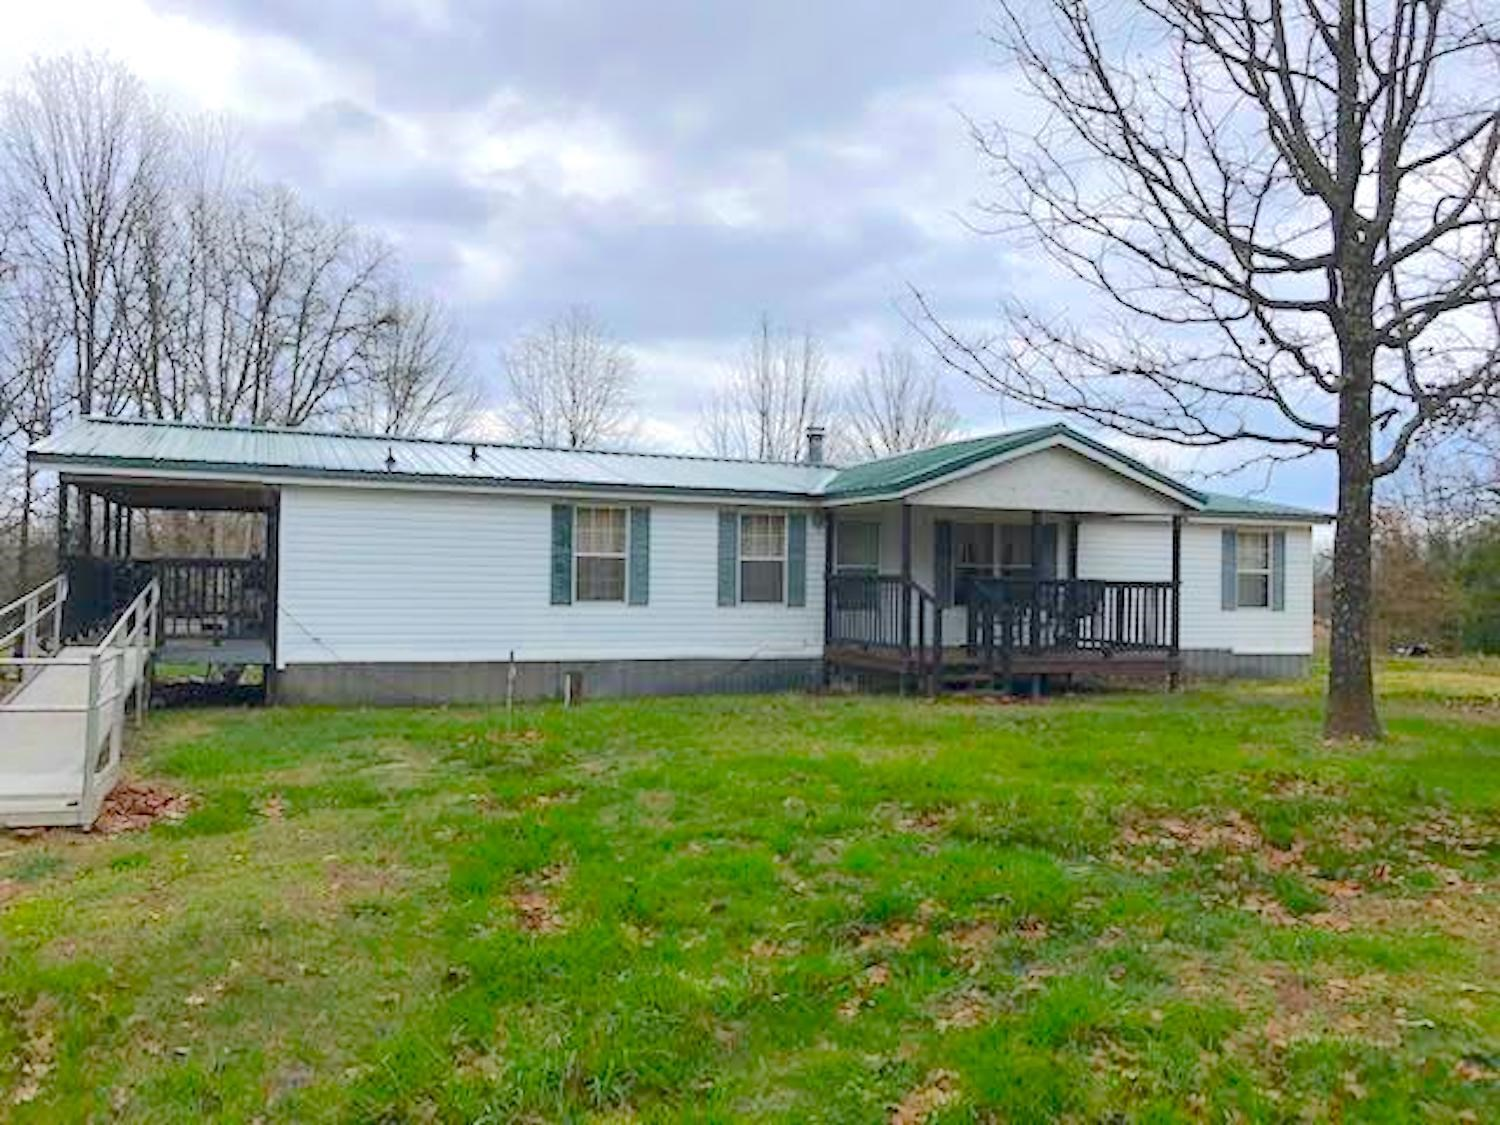 Country Home with Acreage for Sale in Rover, MO